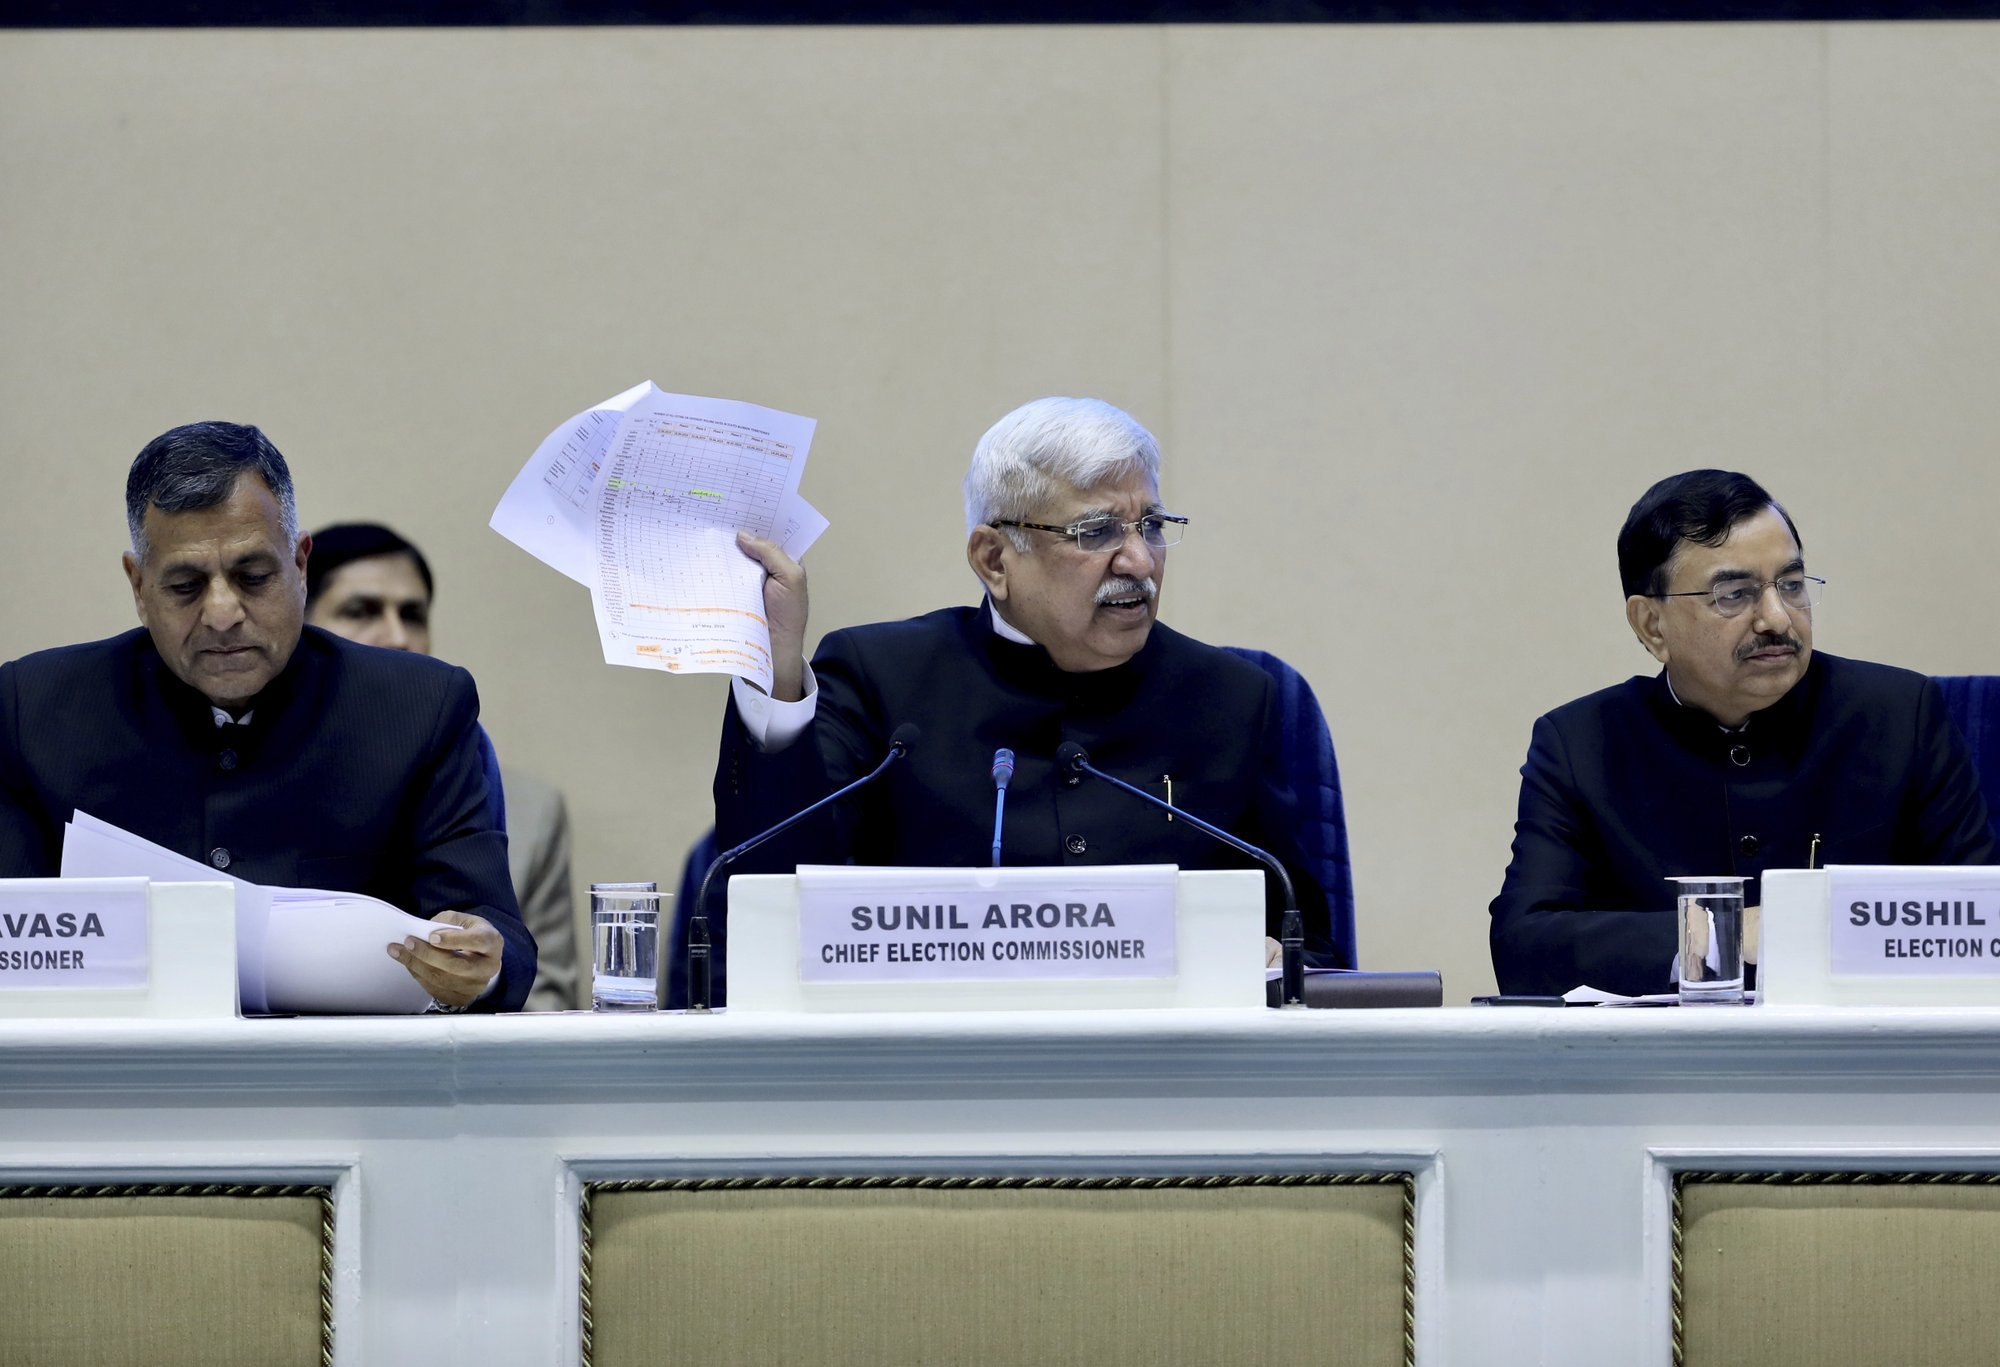 India's Chief Election Commissioner Sunil Arora, center, speaks during a press conference in New Delhi on Sunday. ─ AP